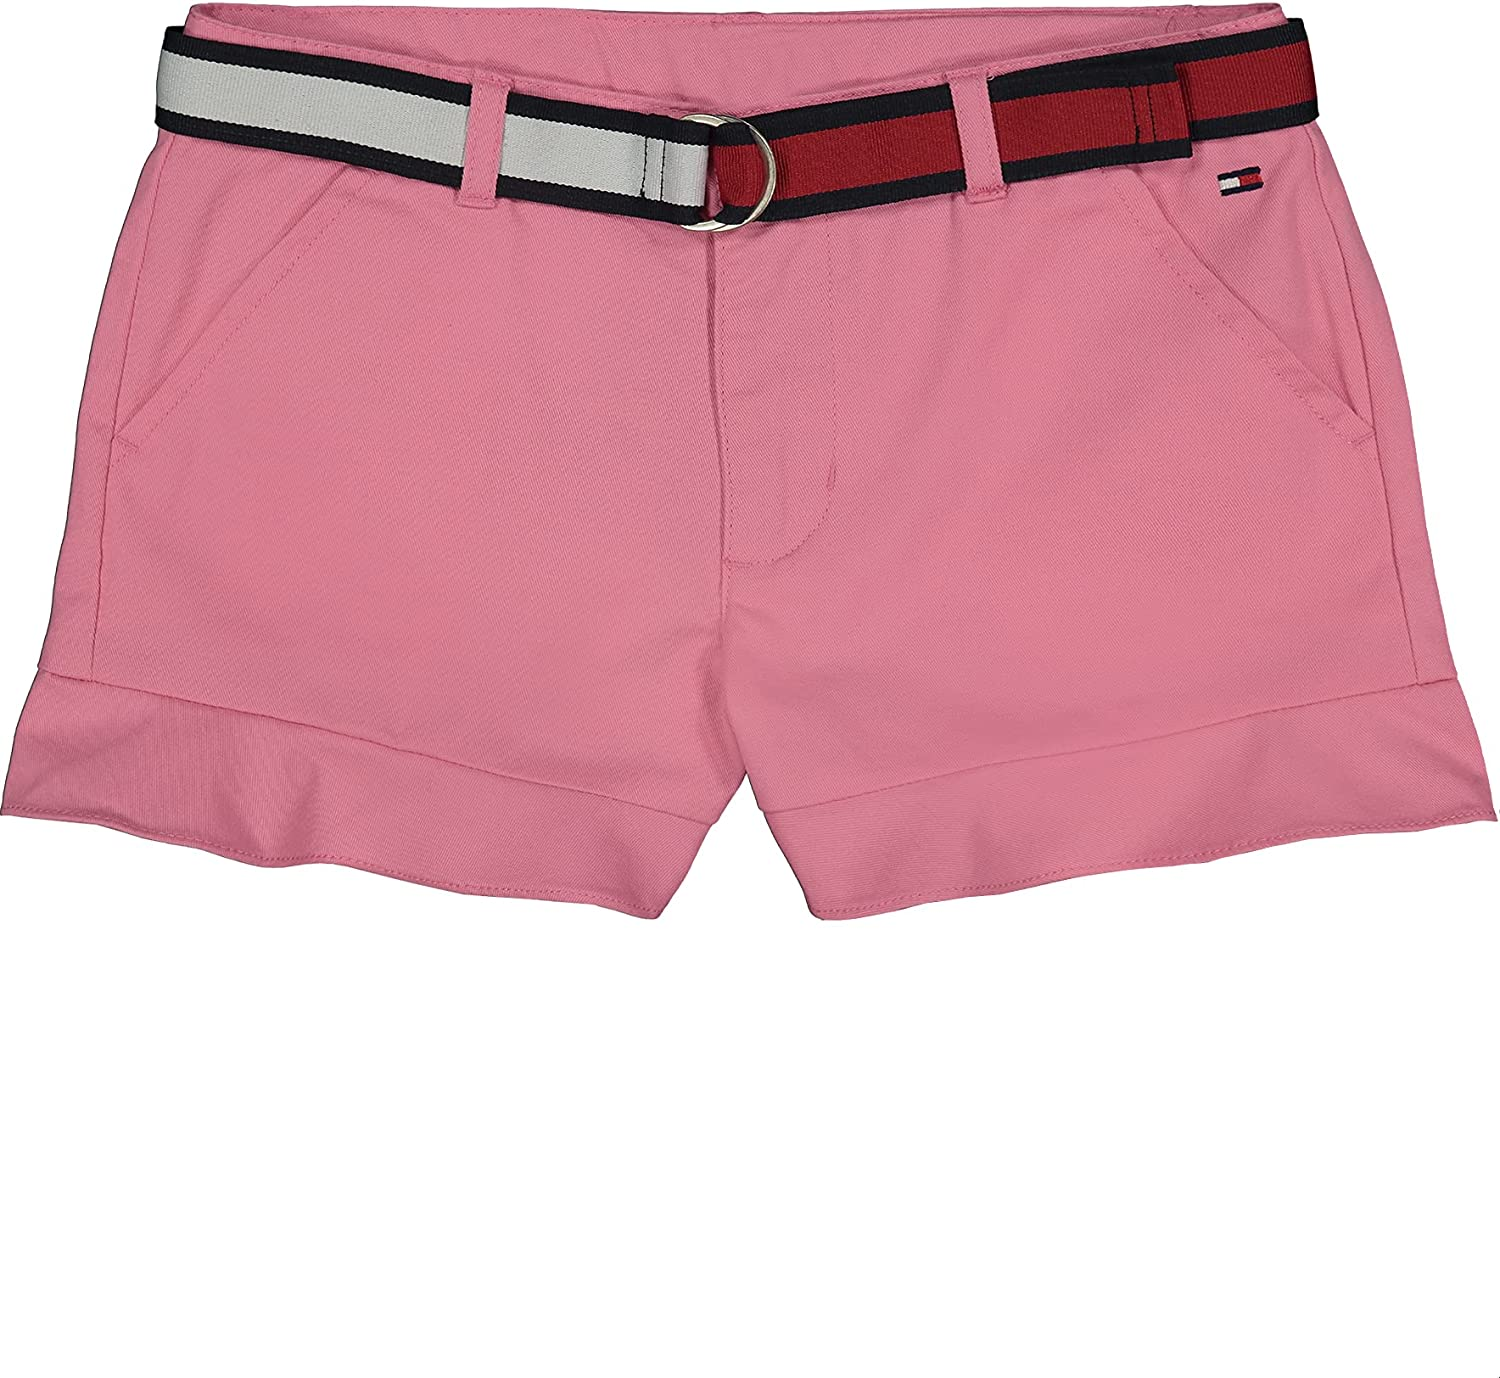 Tommy Hilfiger Girls 5-Pocket Belted famous Max 48% OFF Embro Ruffle Trim Shorts